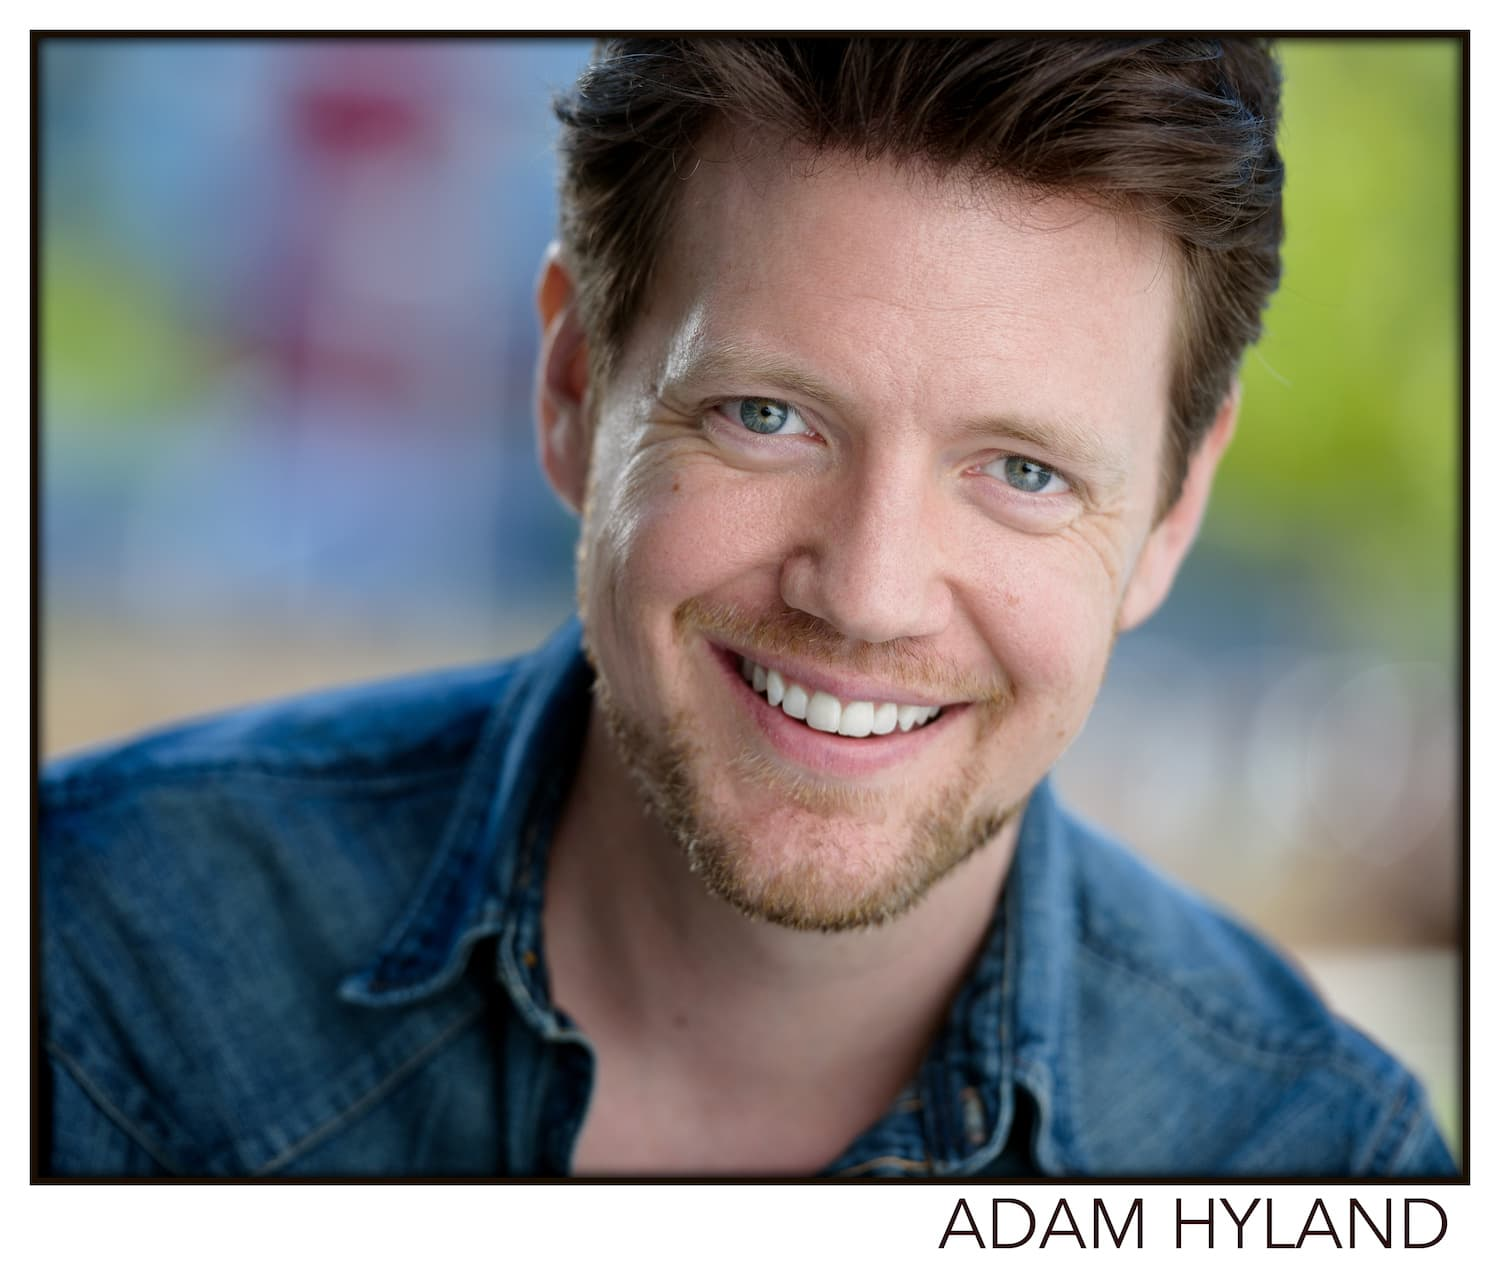 Adam Hyland - Headshot